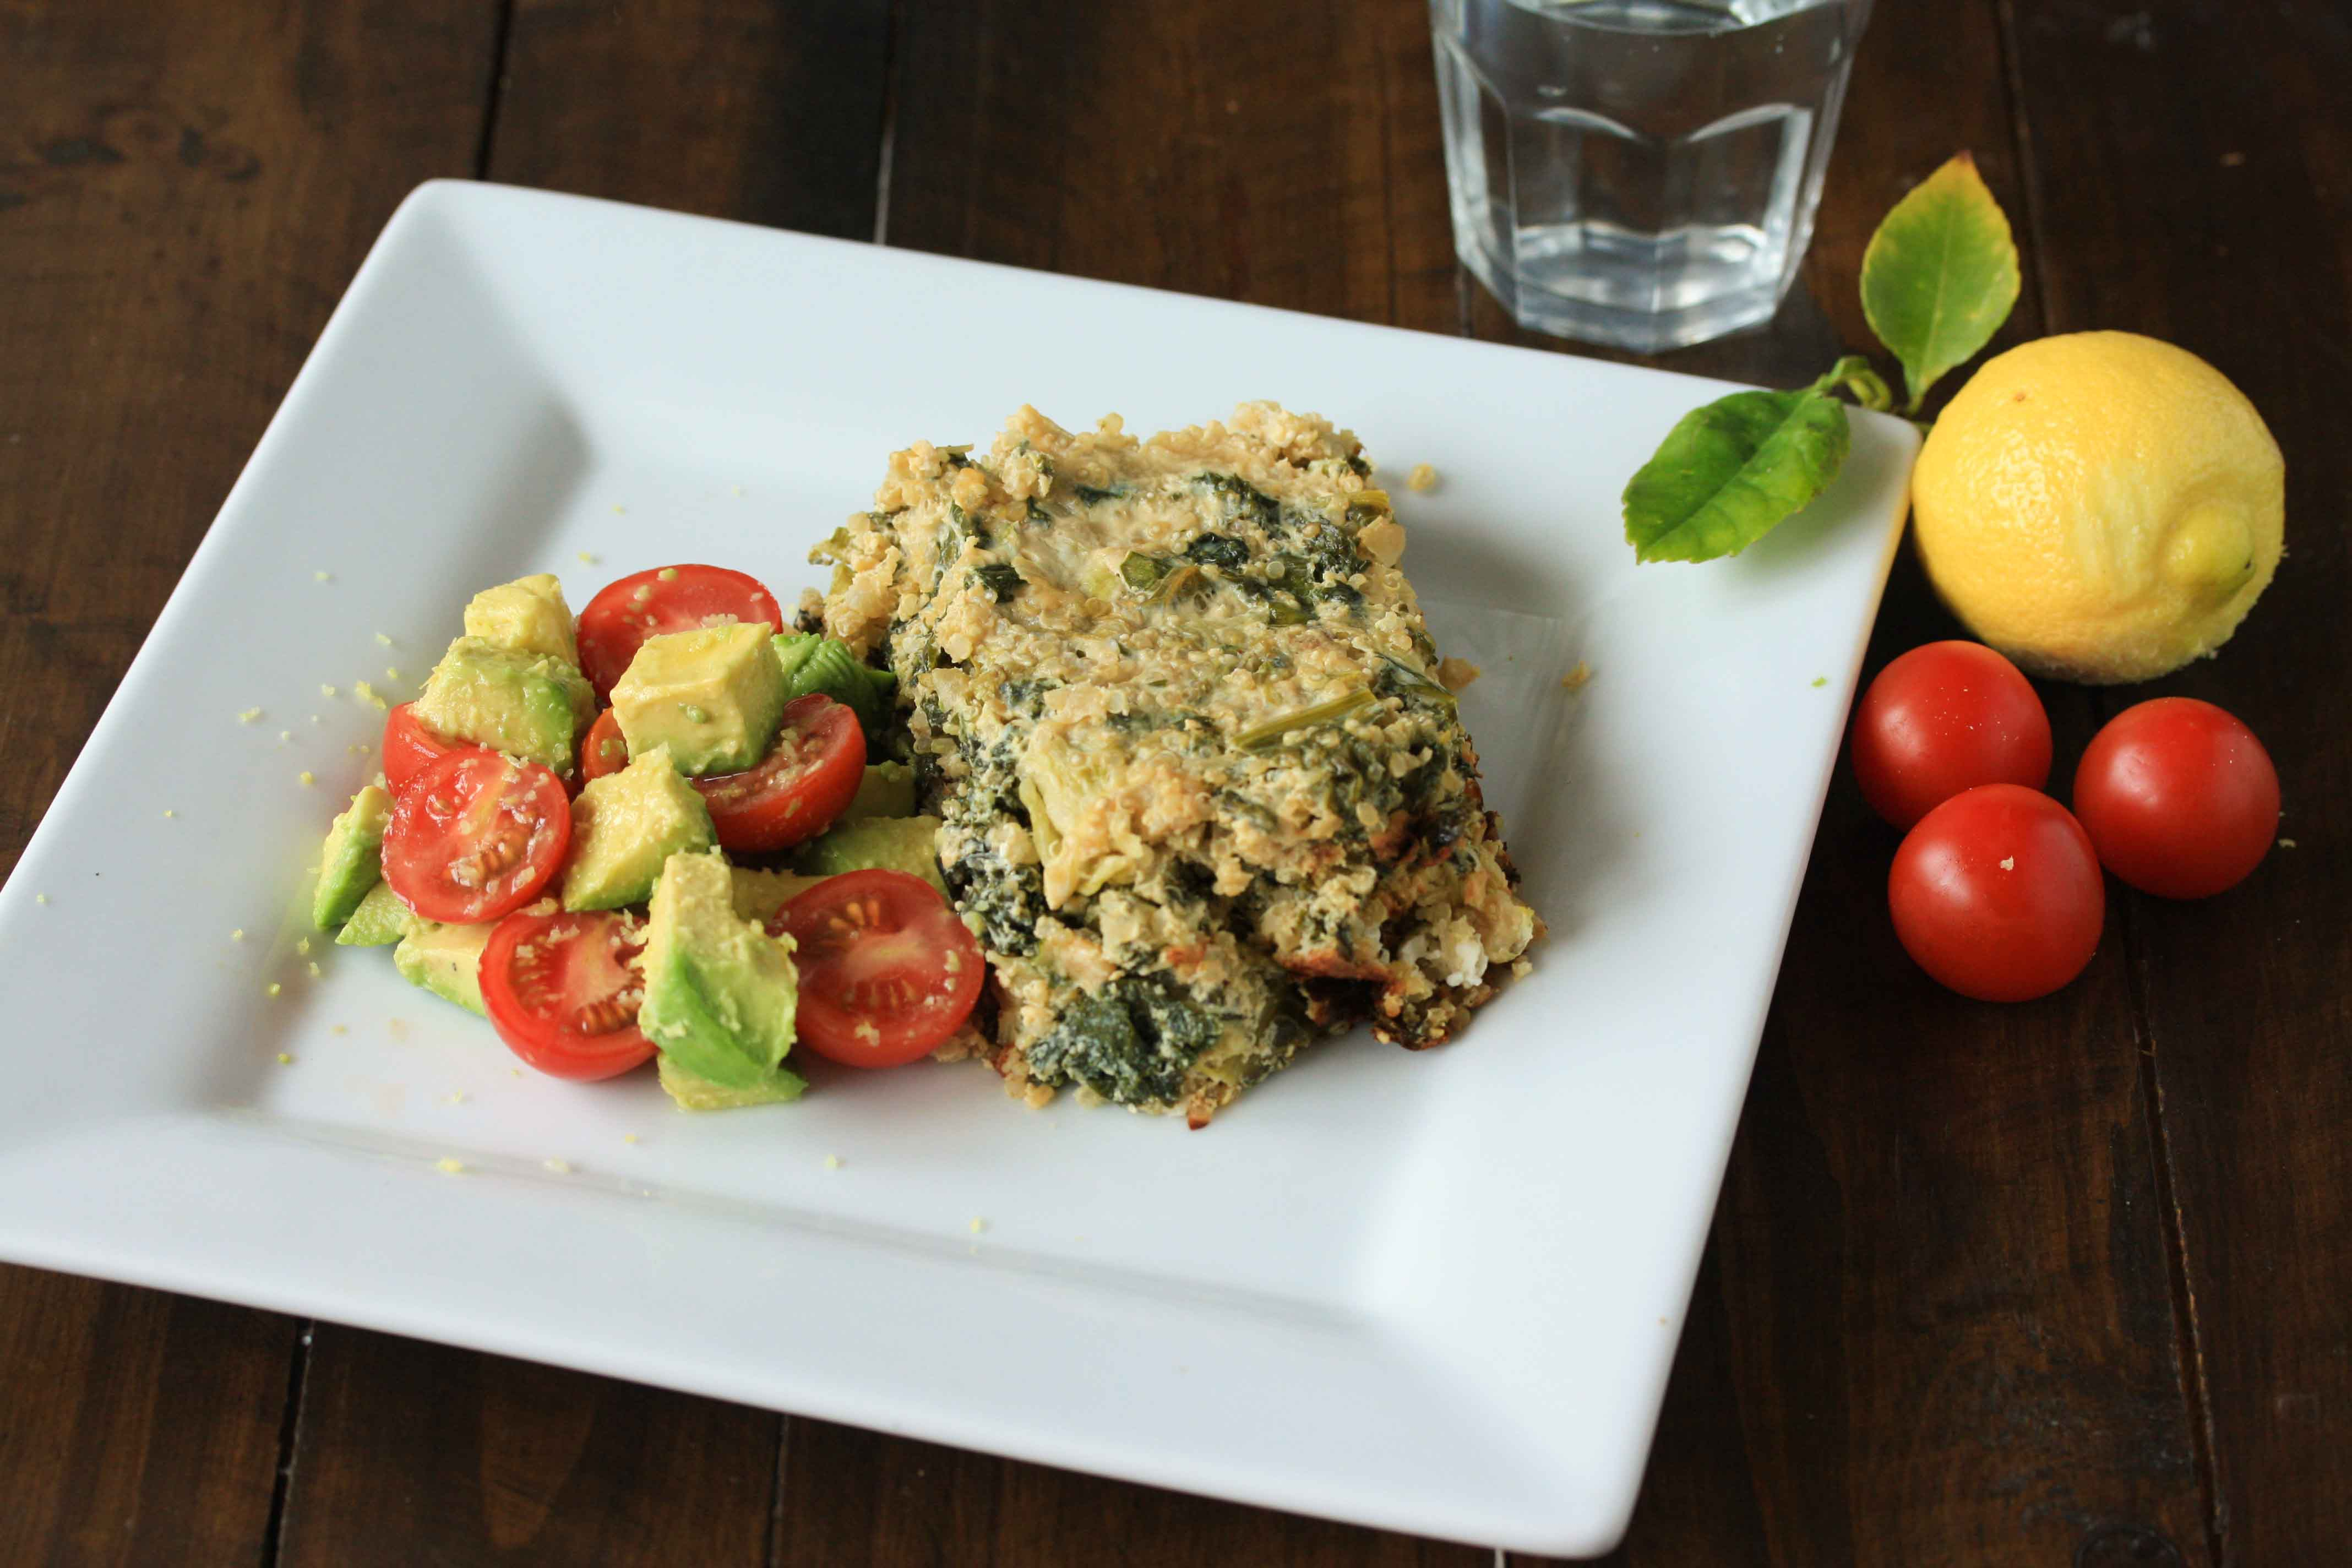 Quinoa and kale frittata with avocado and tomato salsa